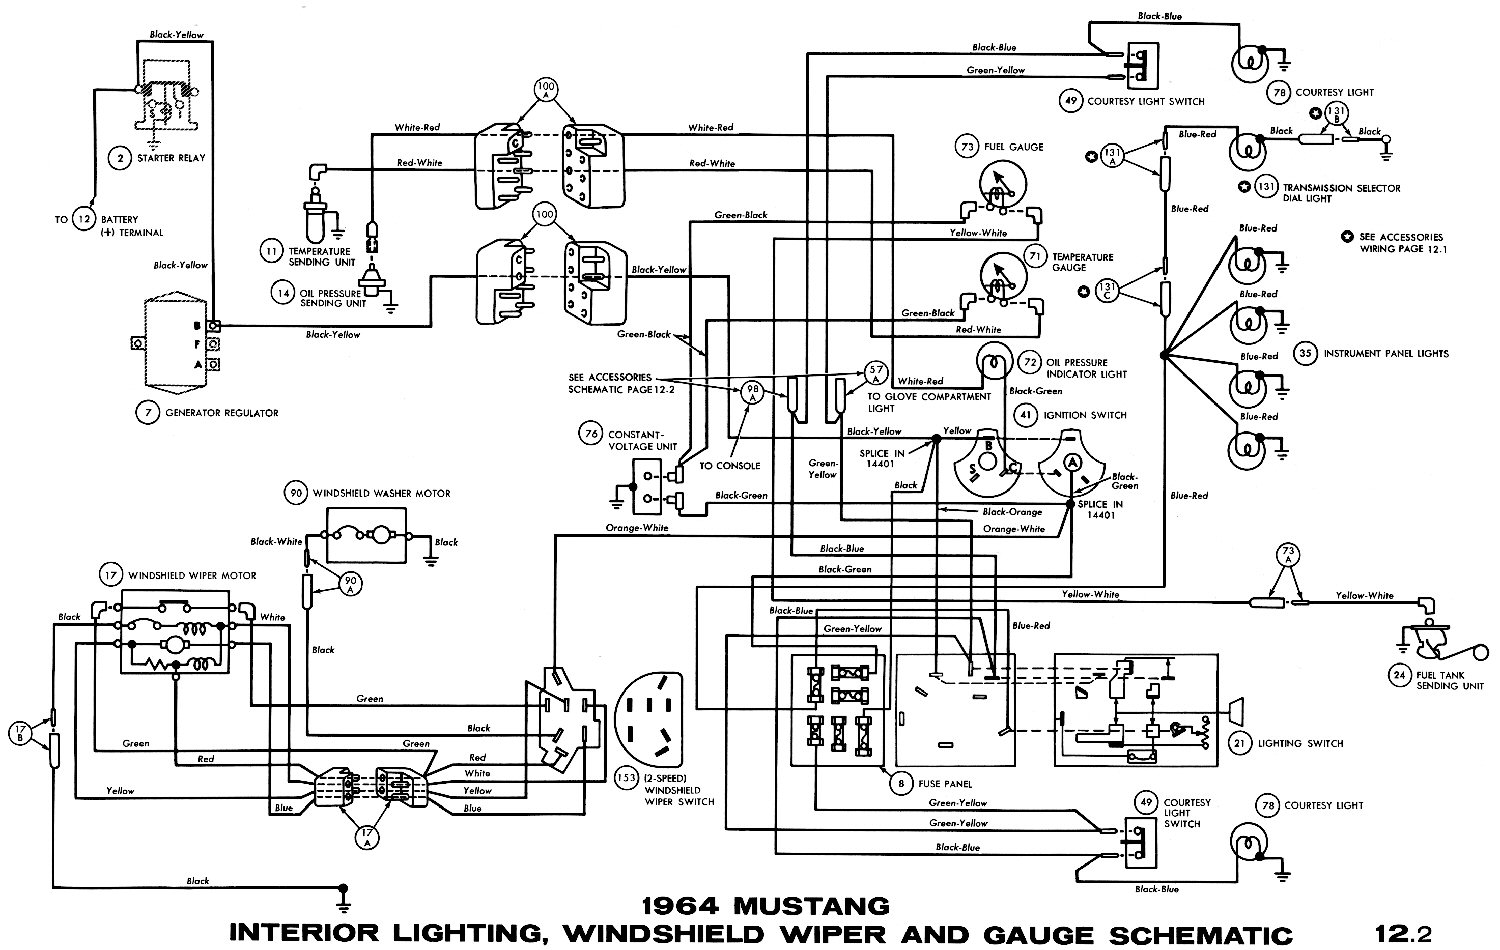 1964k 1964 mustang wiring diagrams average joe restoration 1966 ford mustang wiring diagram at crackthecode.co